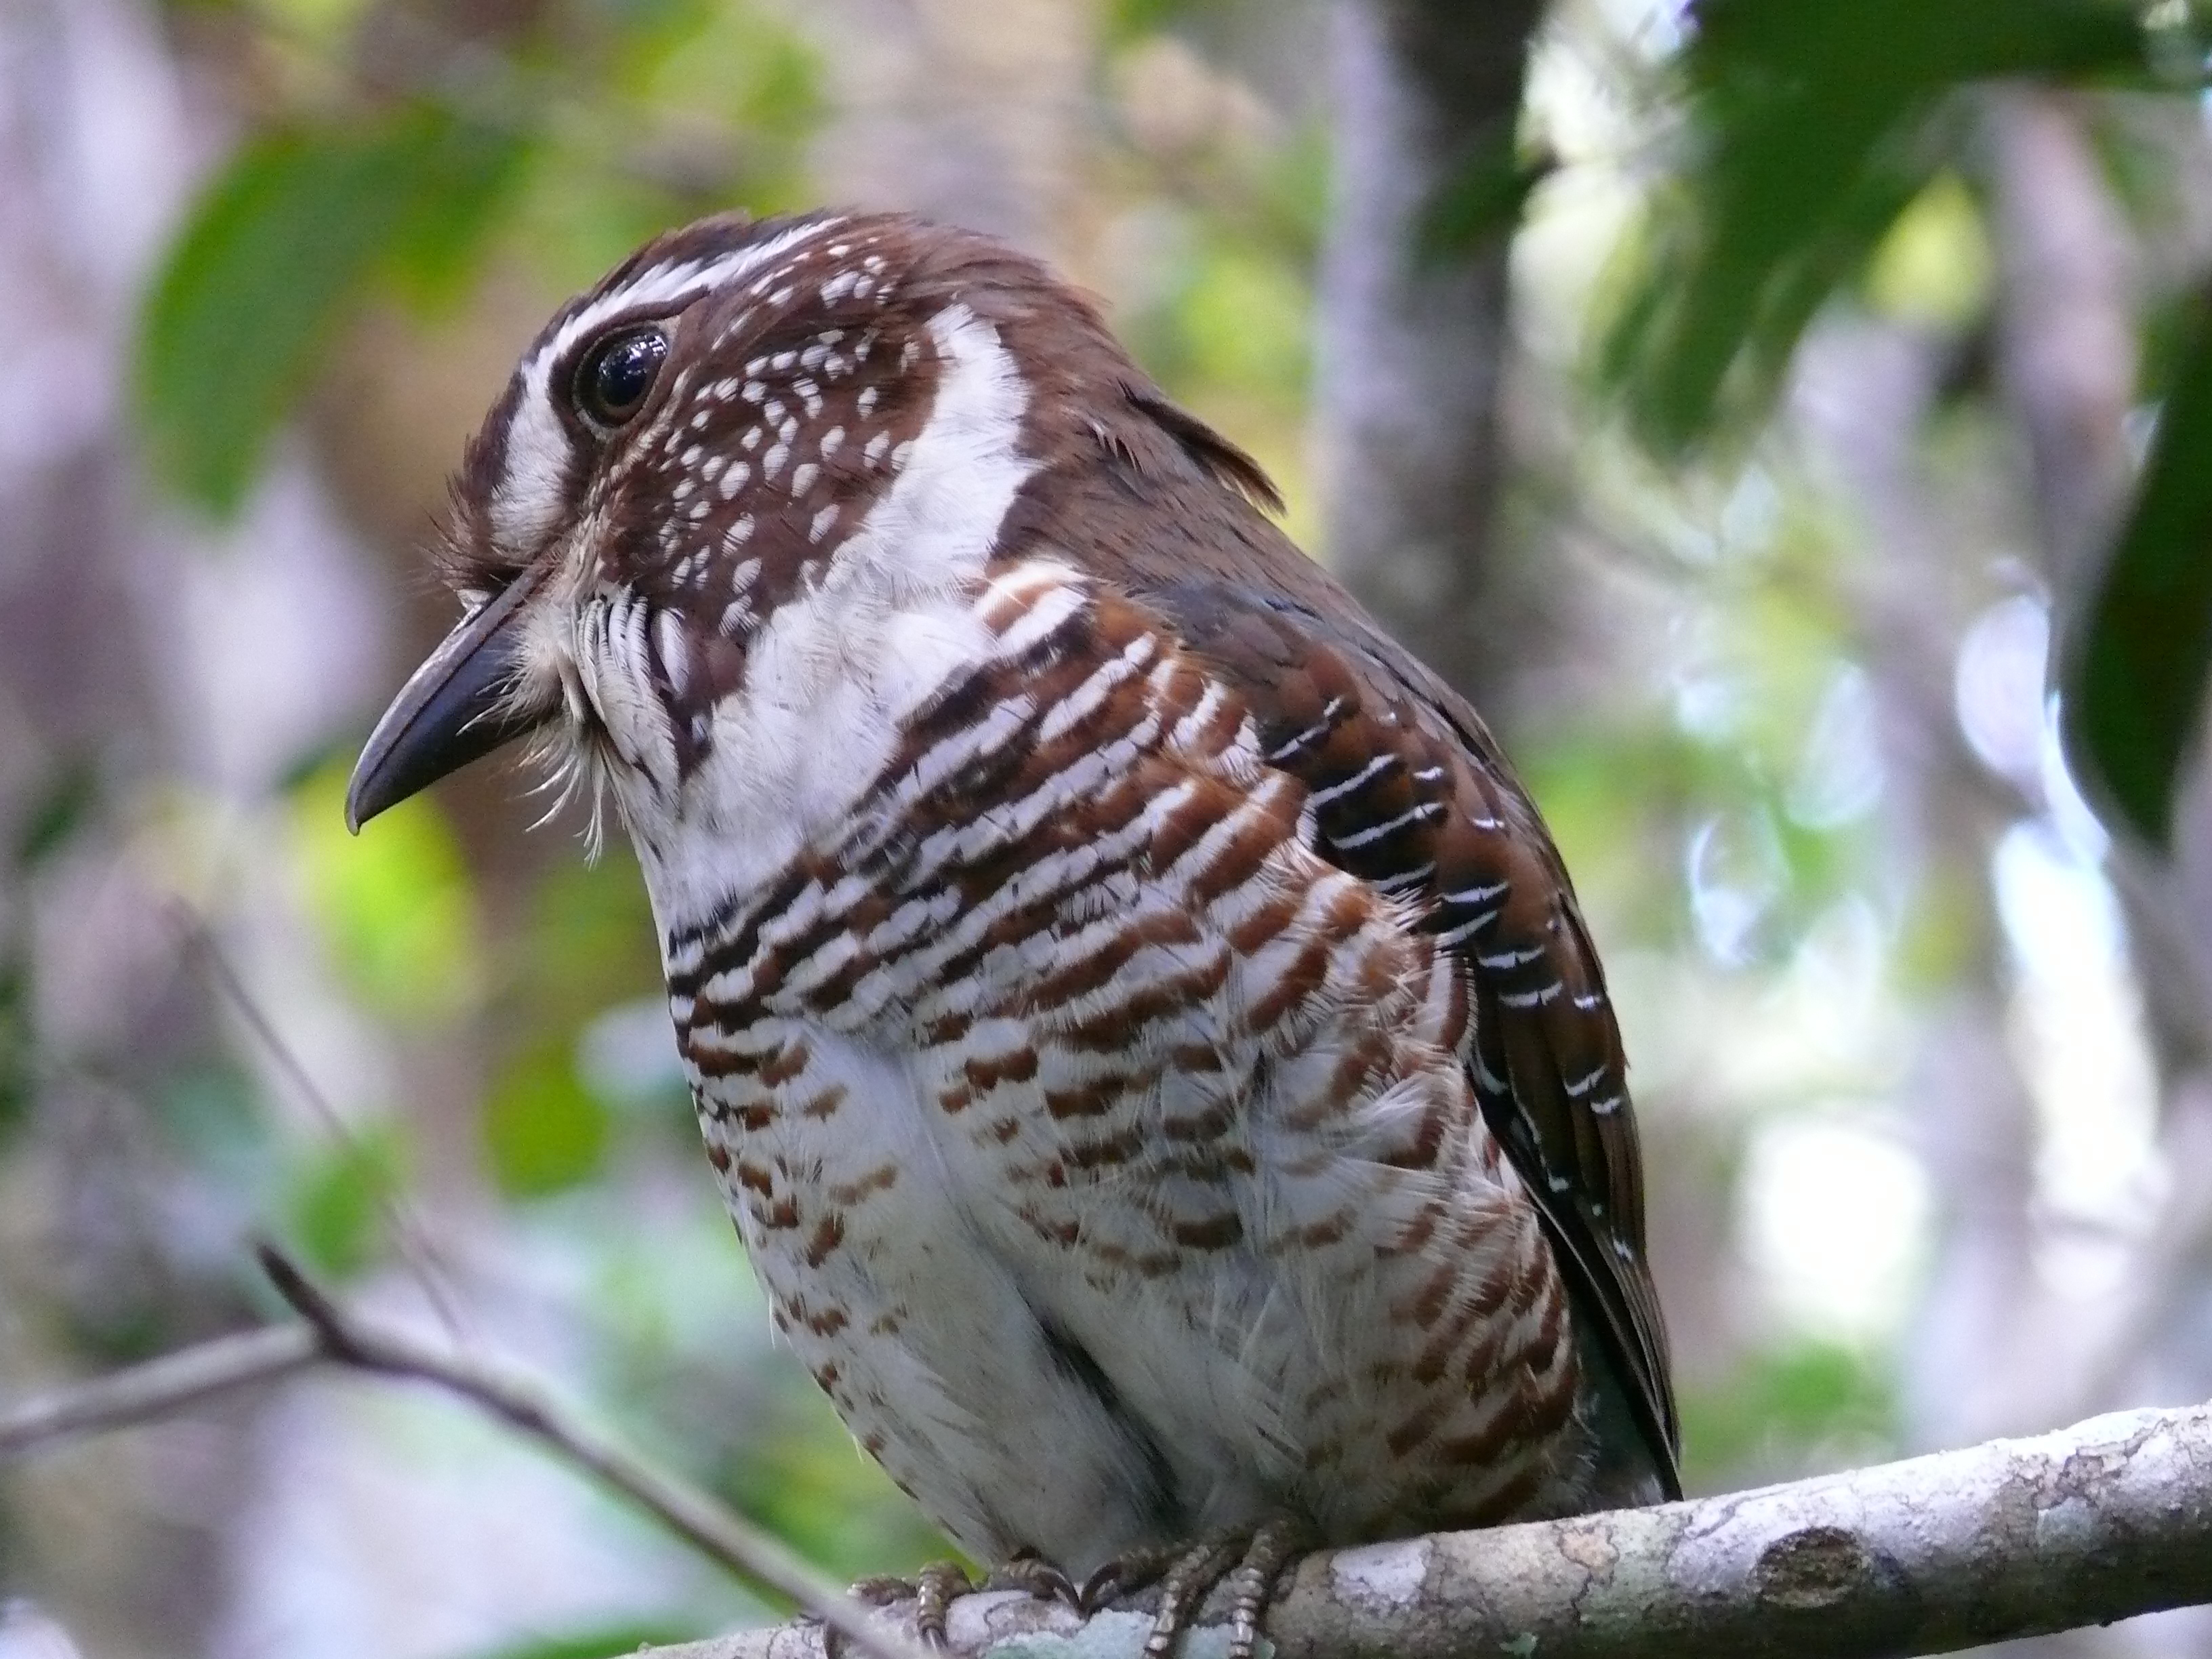 Image of Short-legged Ground Roller